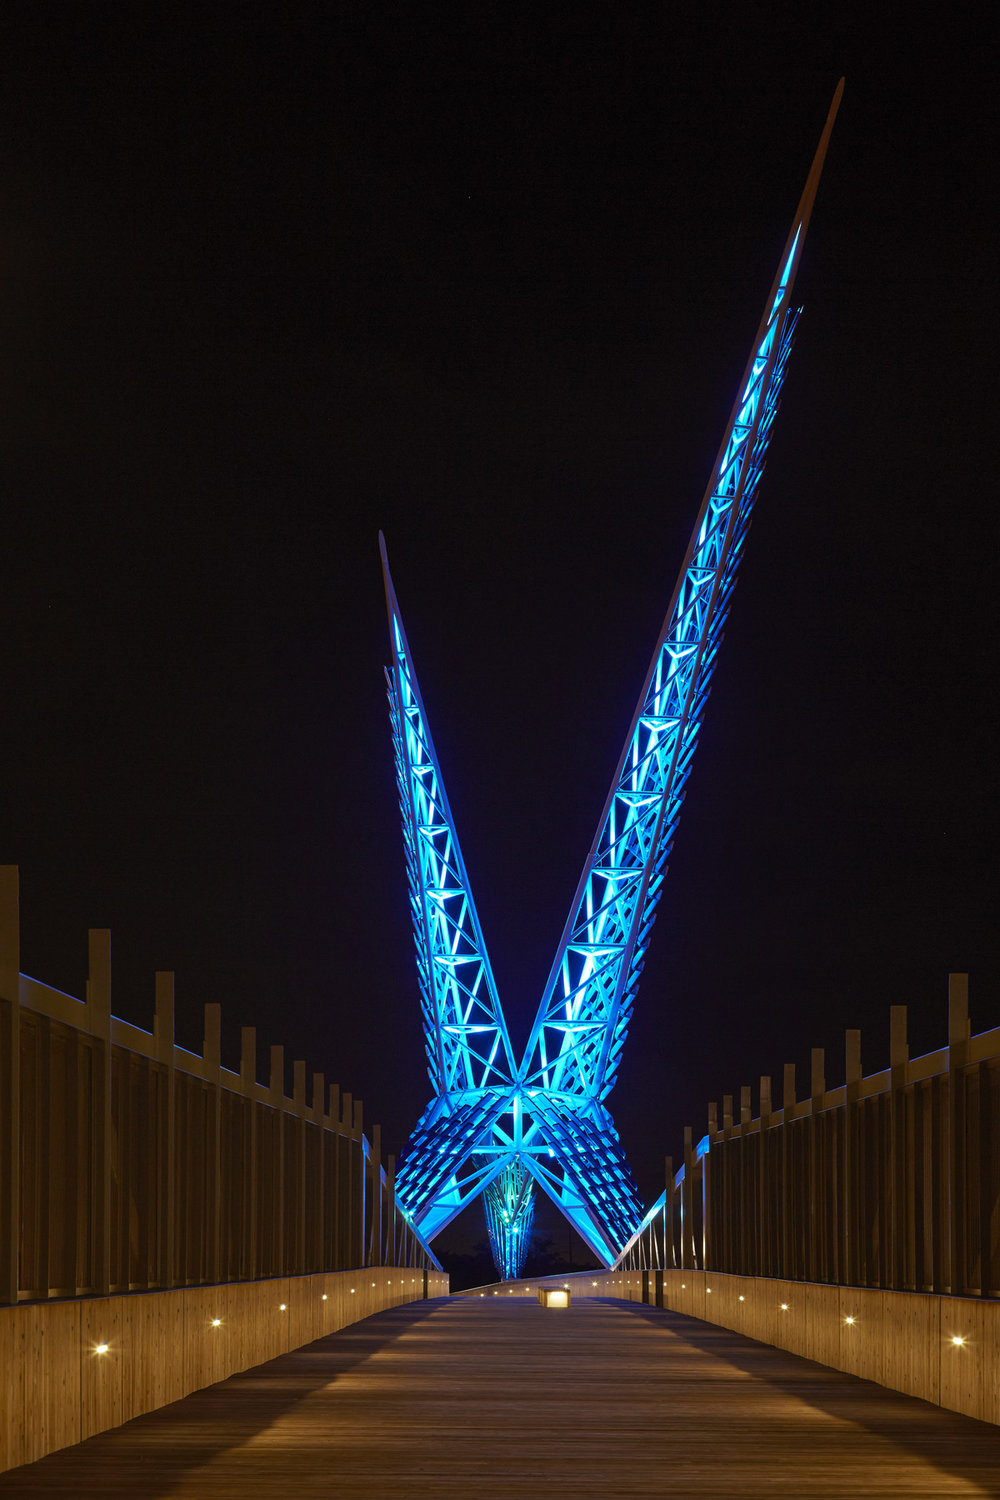 Skydance Bridge photo by Timothy Hursley 009.jpg